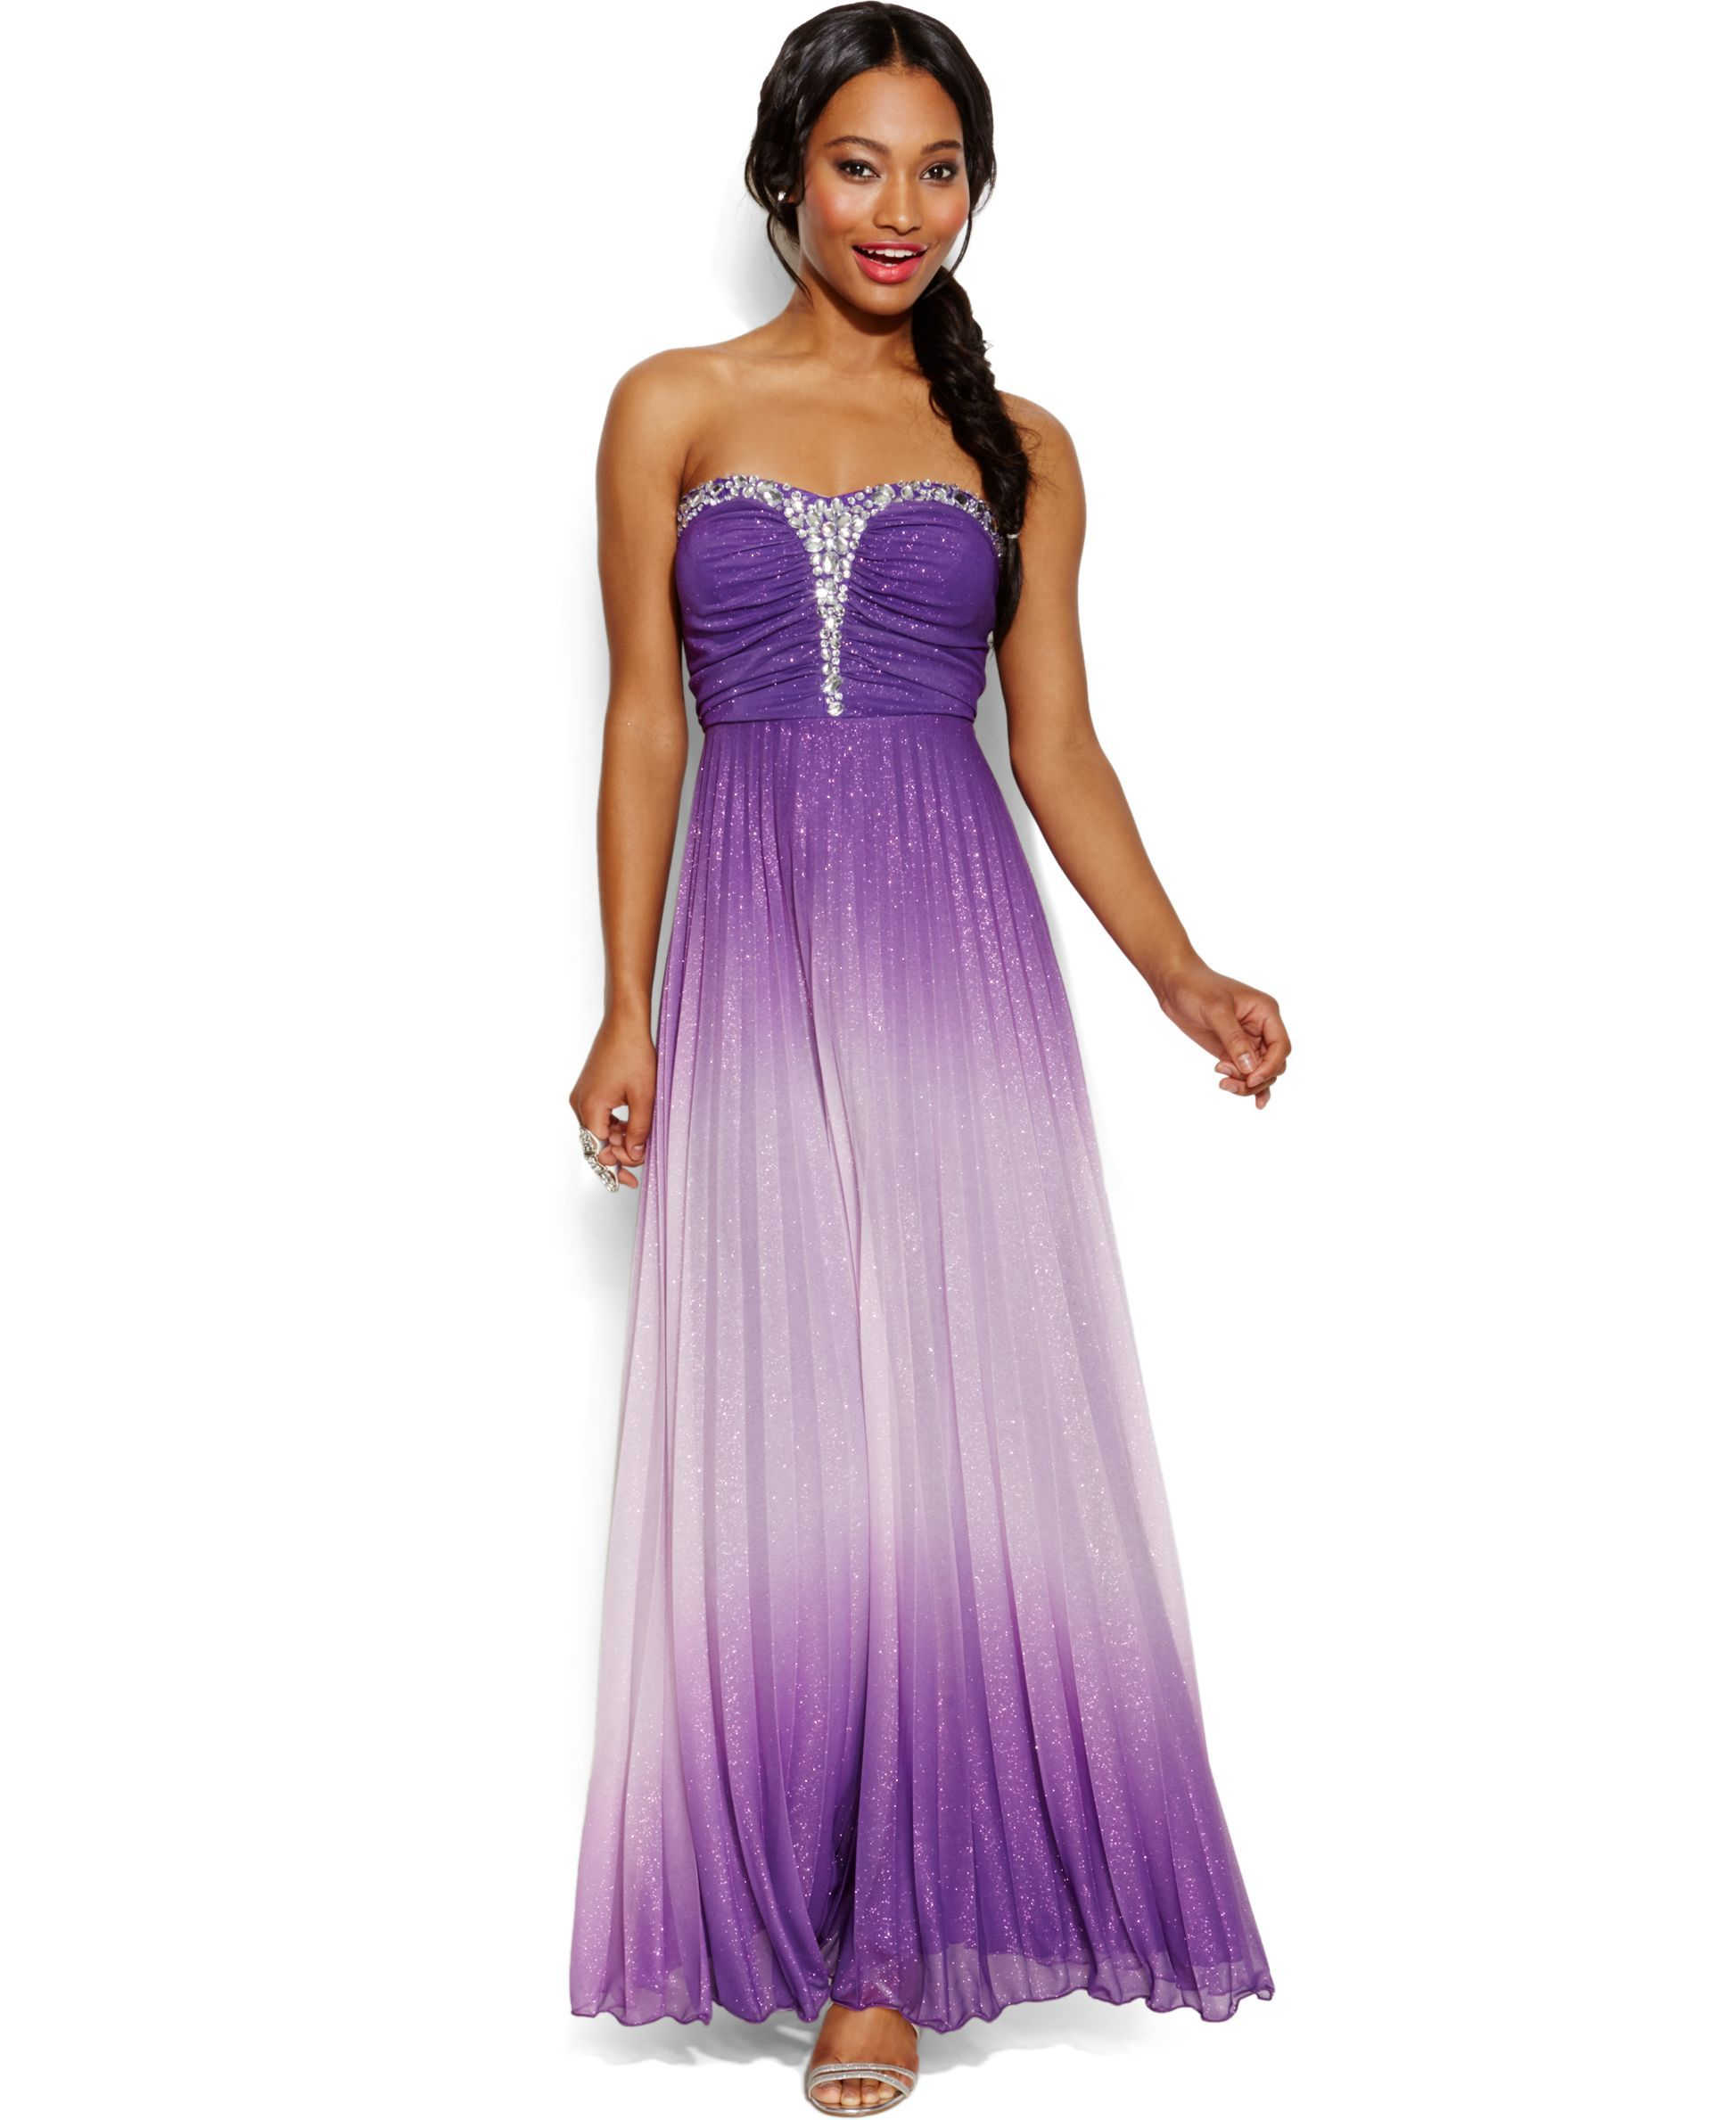 Speechless juniorsu glittered ombre gown products pinterest